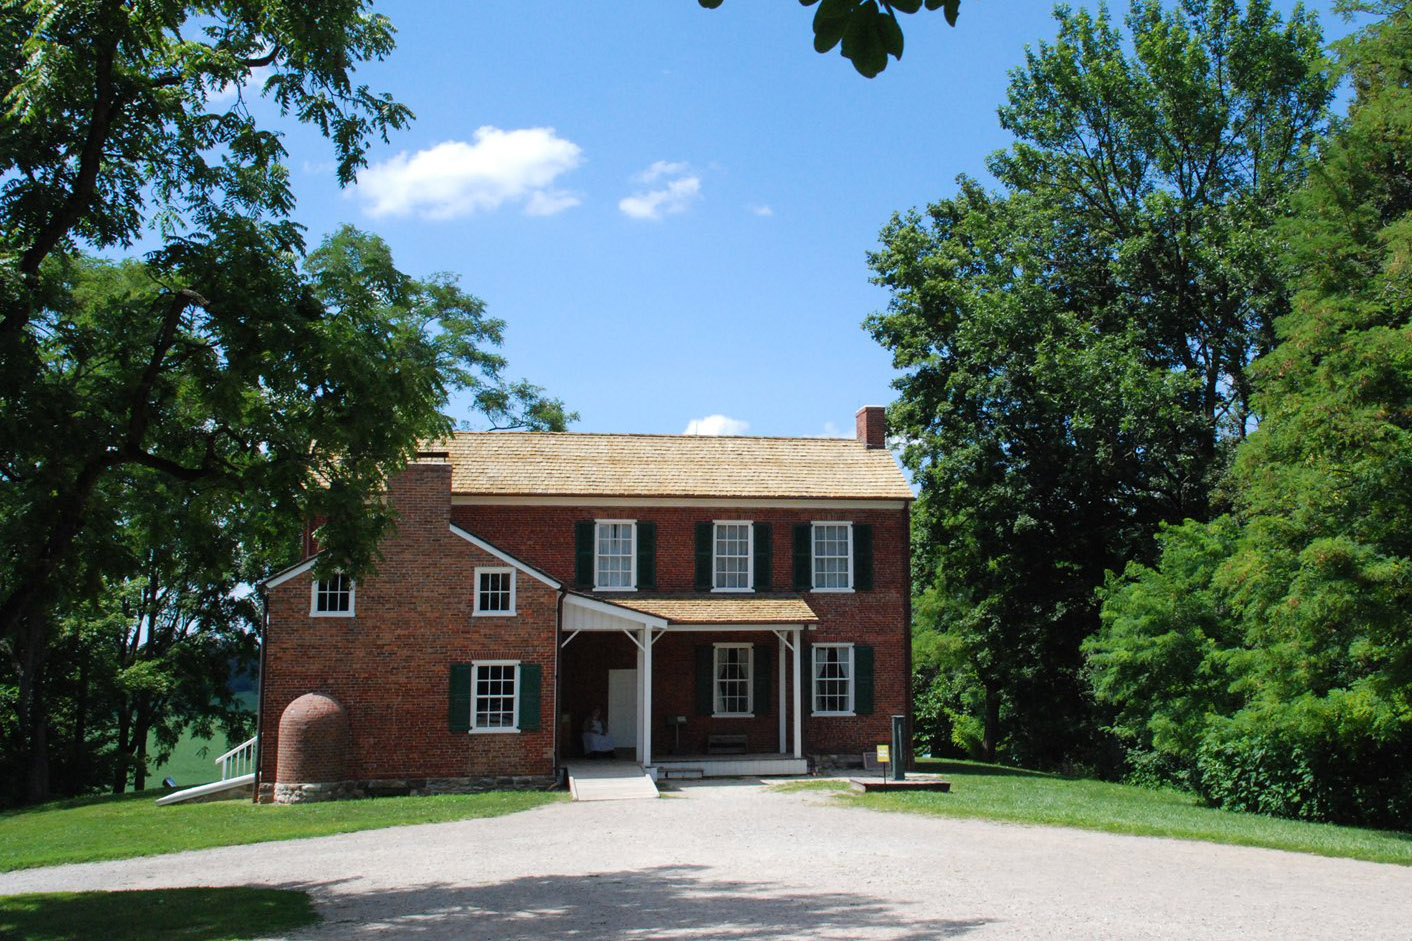 Figure 2: William Conner House at Conner Prairie, one of the sites highlighting diversity in America's religious past. Conner Prairie.